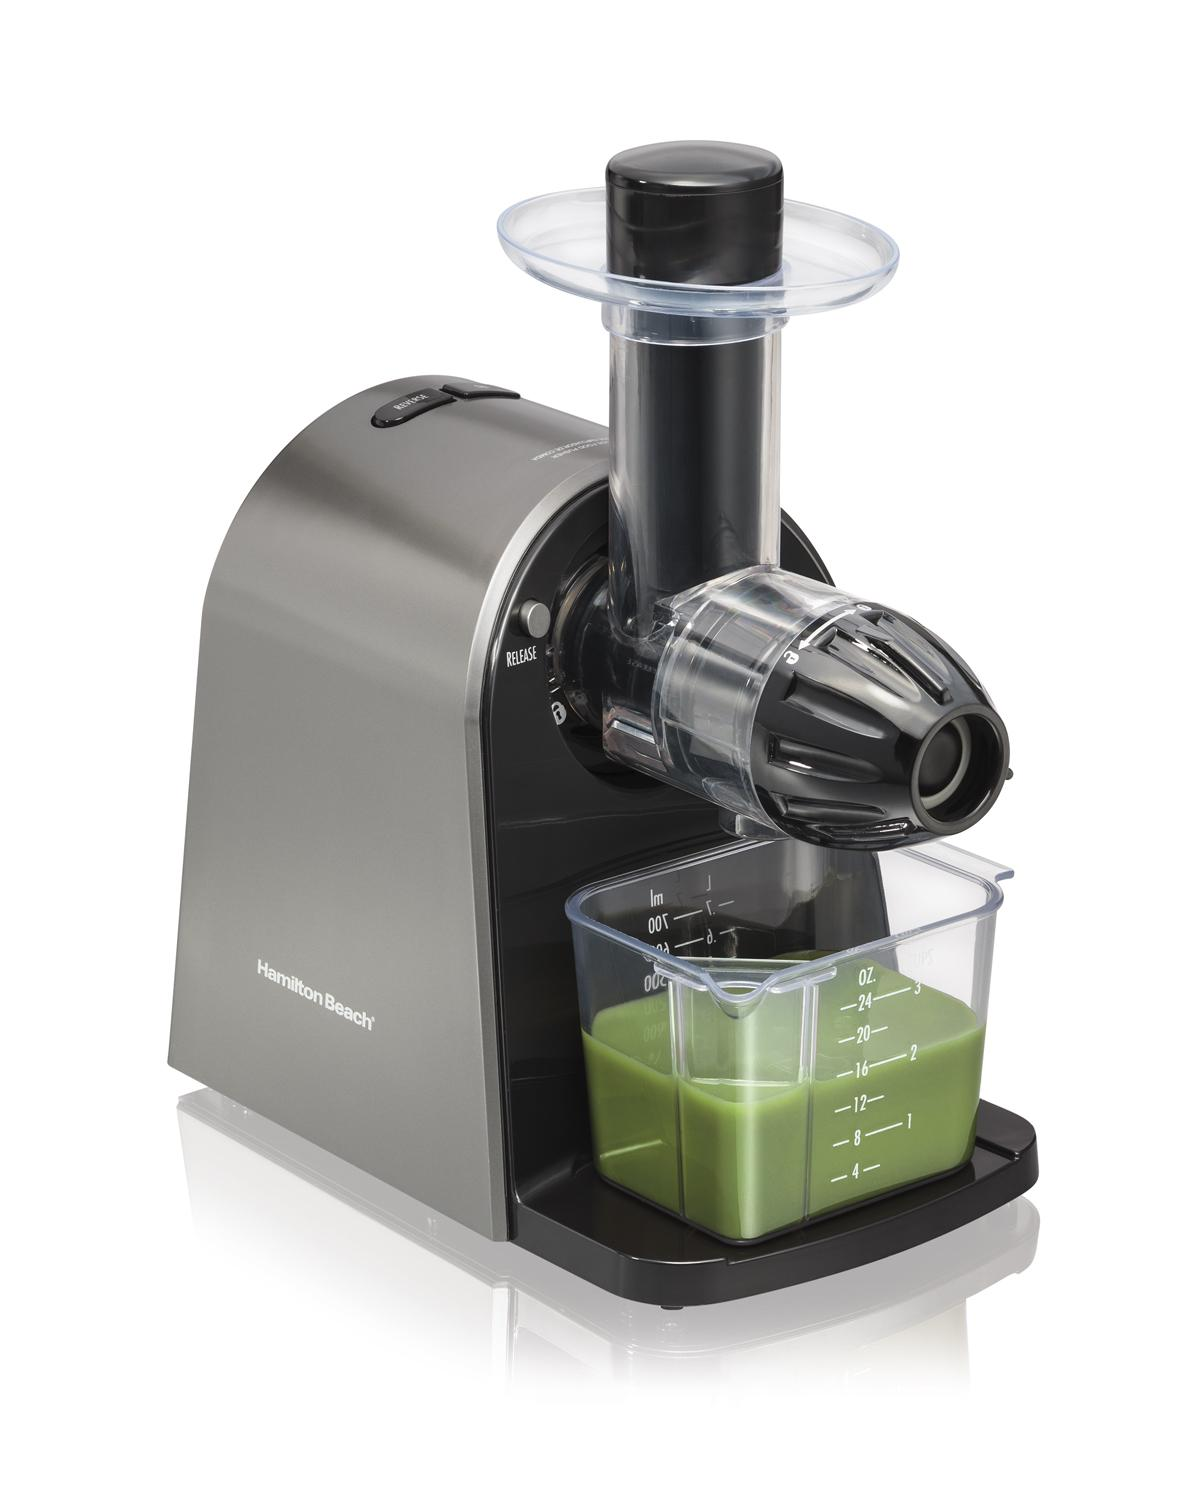 juicer breville commercial cuisinart omega extractor slow juicers electric vegetable masticating